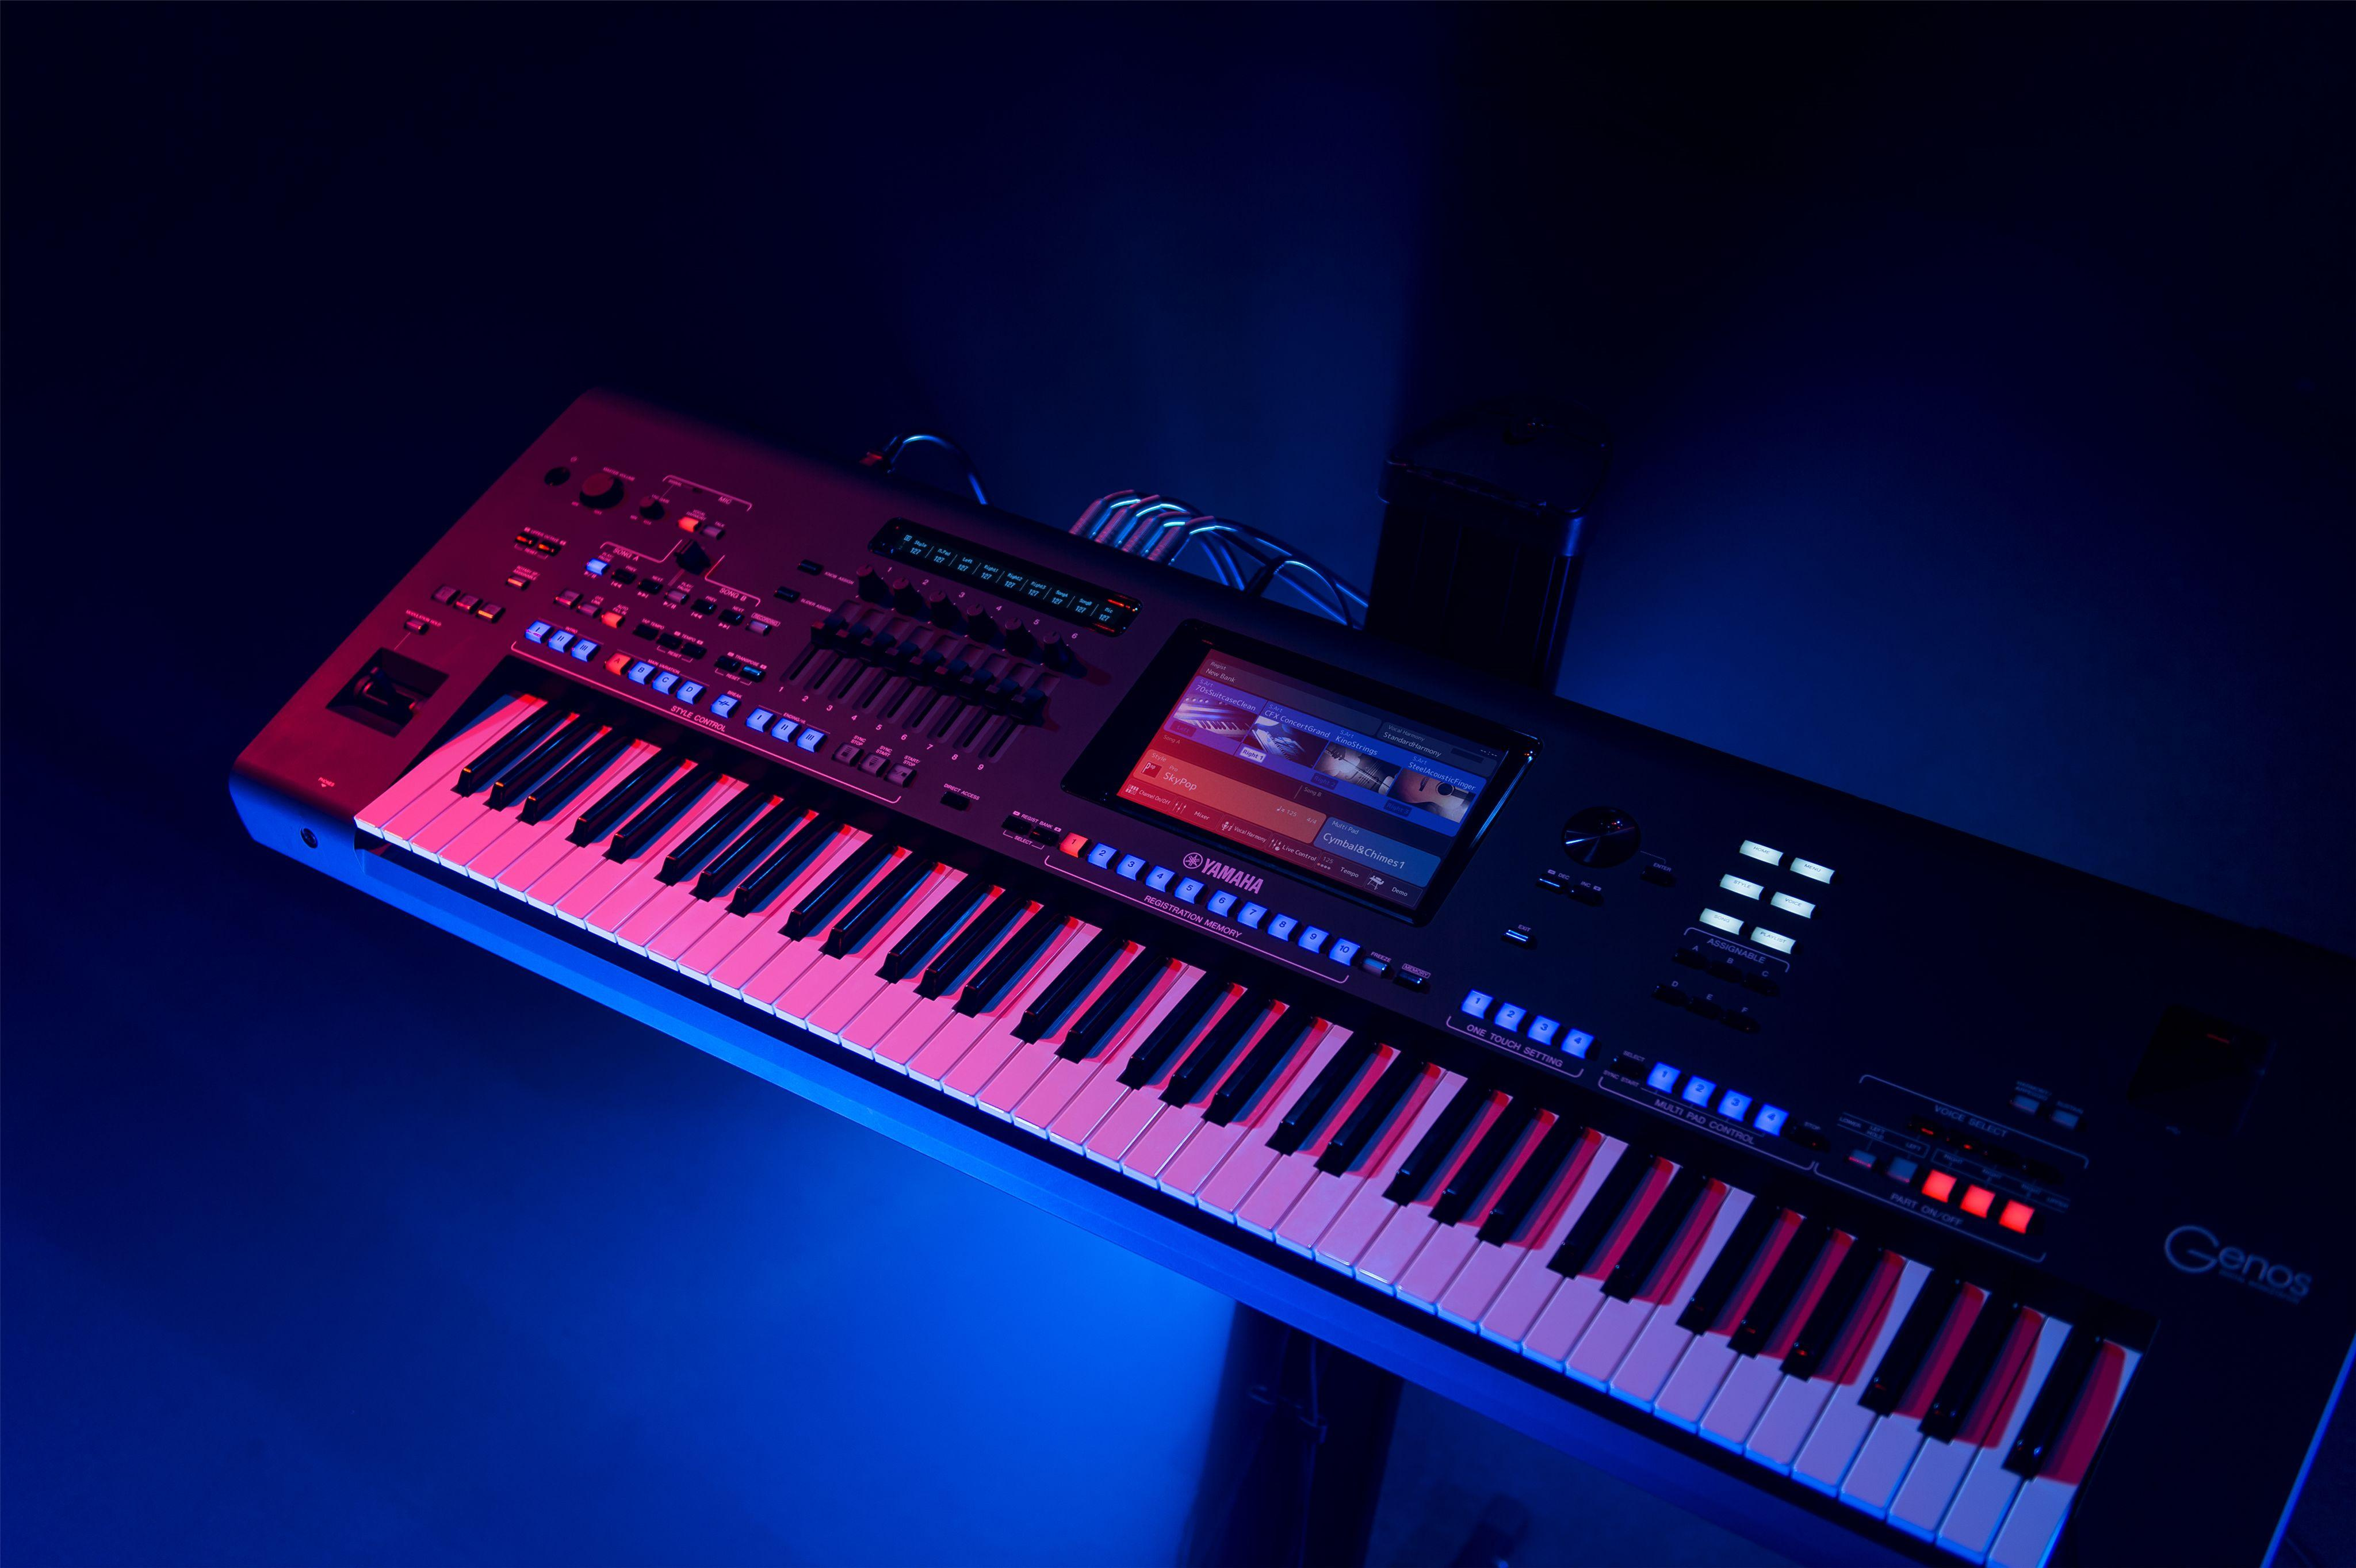 Yamaha Keyboards Wallpapers Wallpaper Cave